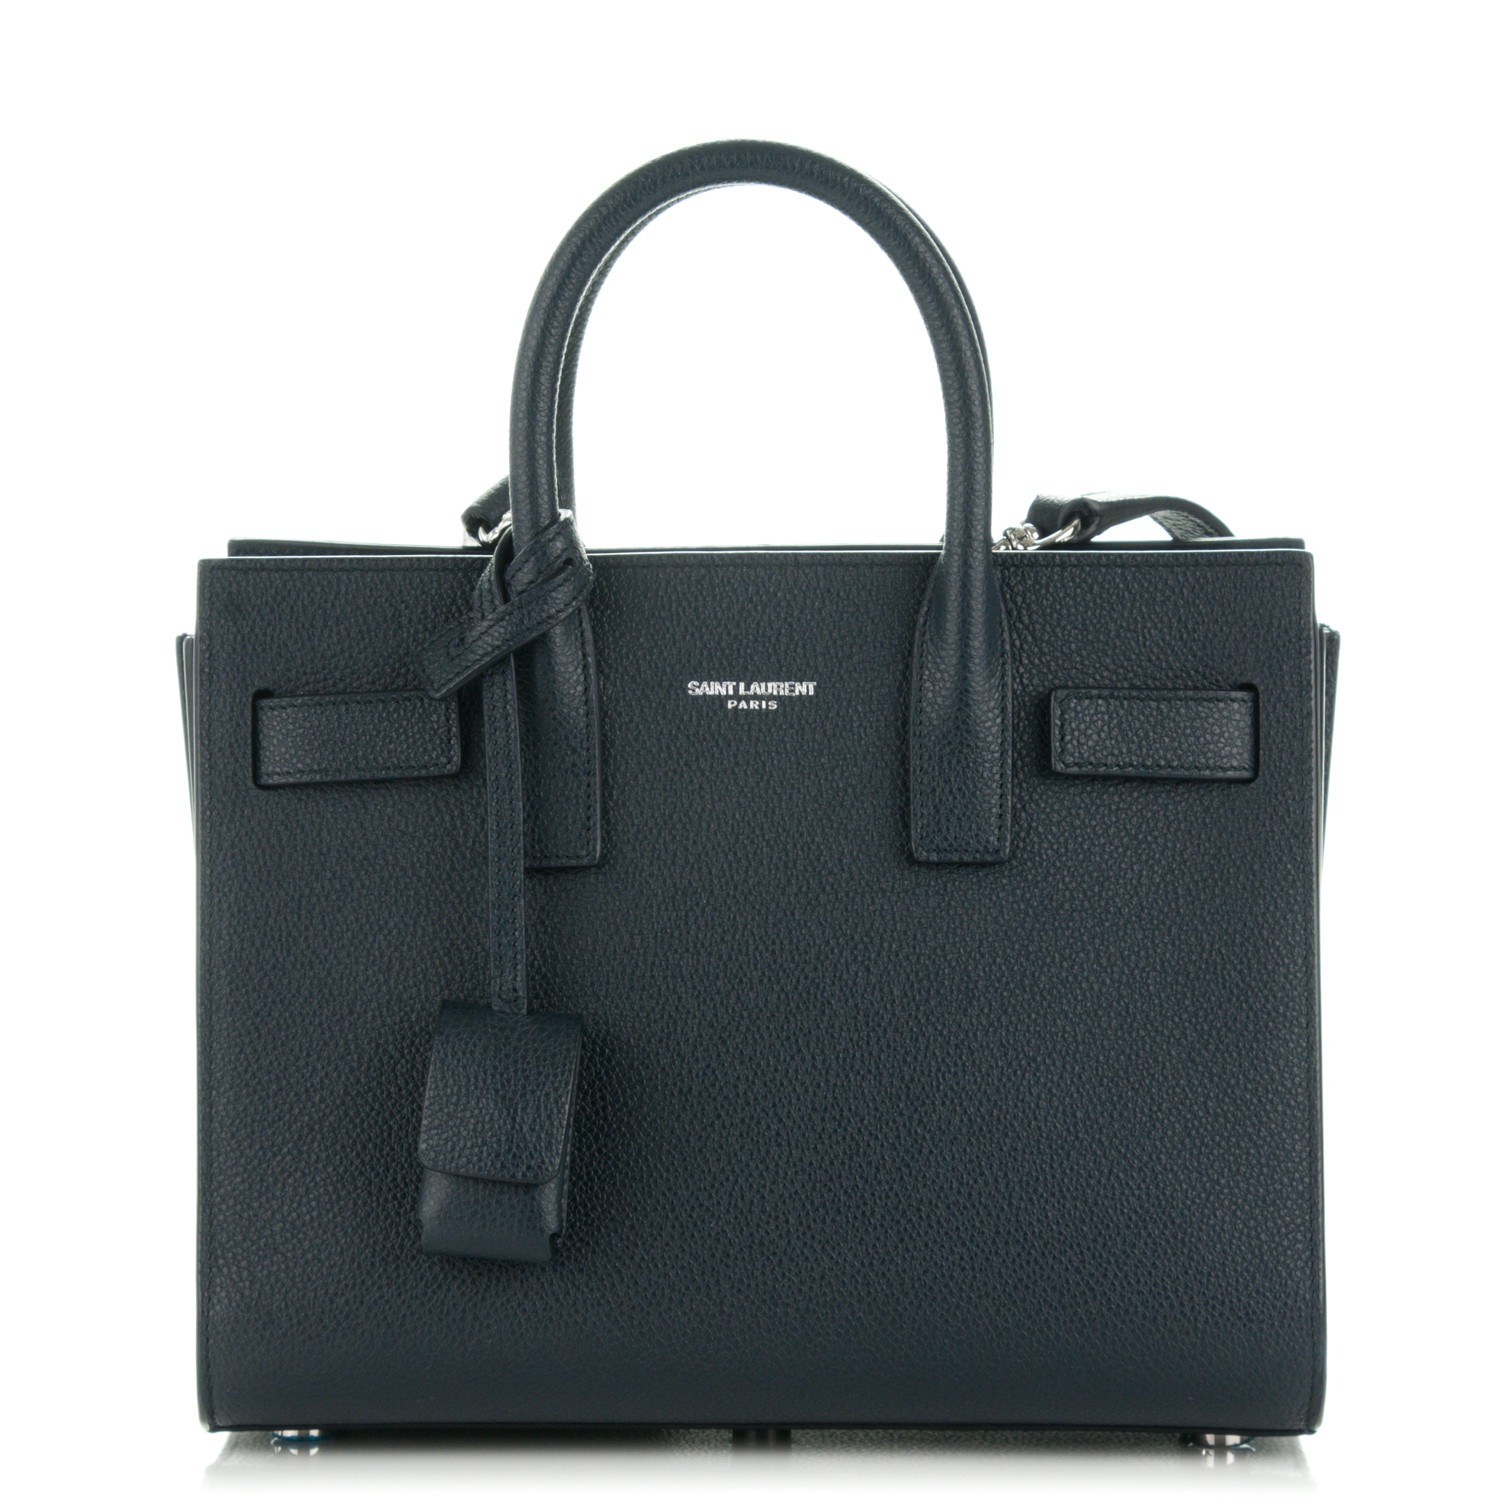 6900984031 SAINT LAURENT Grained Calfskin Nano Sac De Jour Navy Blue 177009